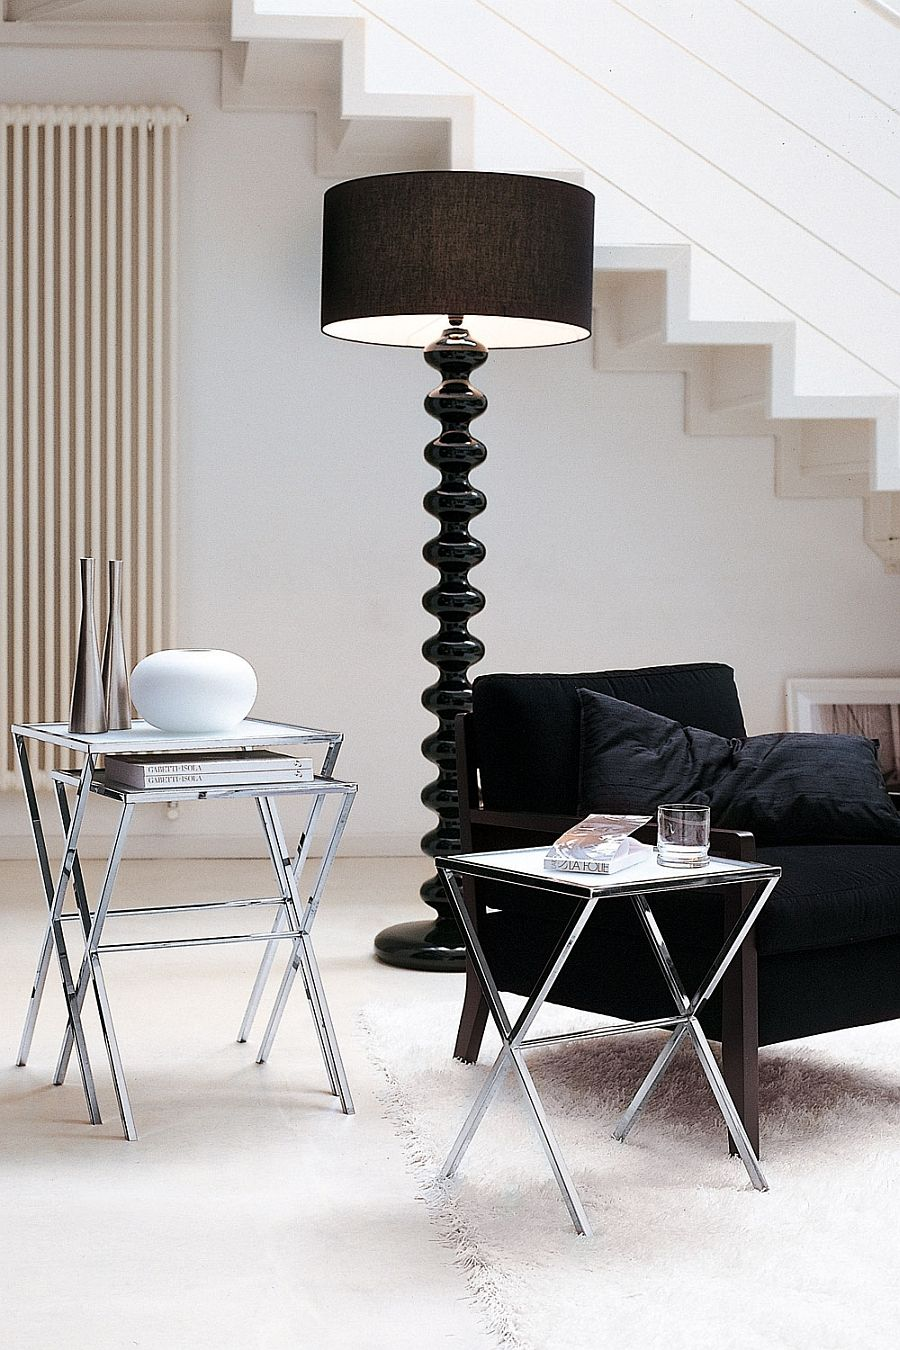 Modern black floor lamp in the living room